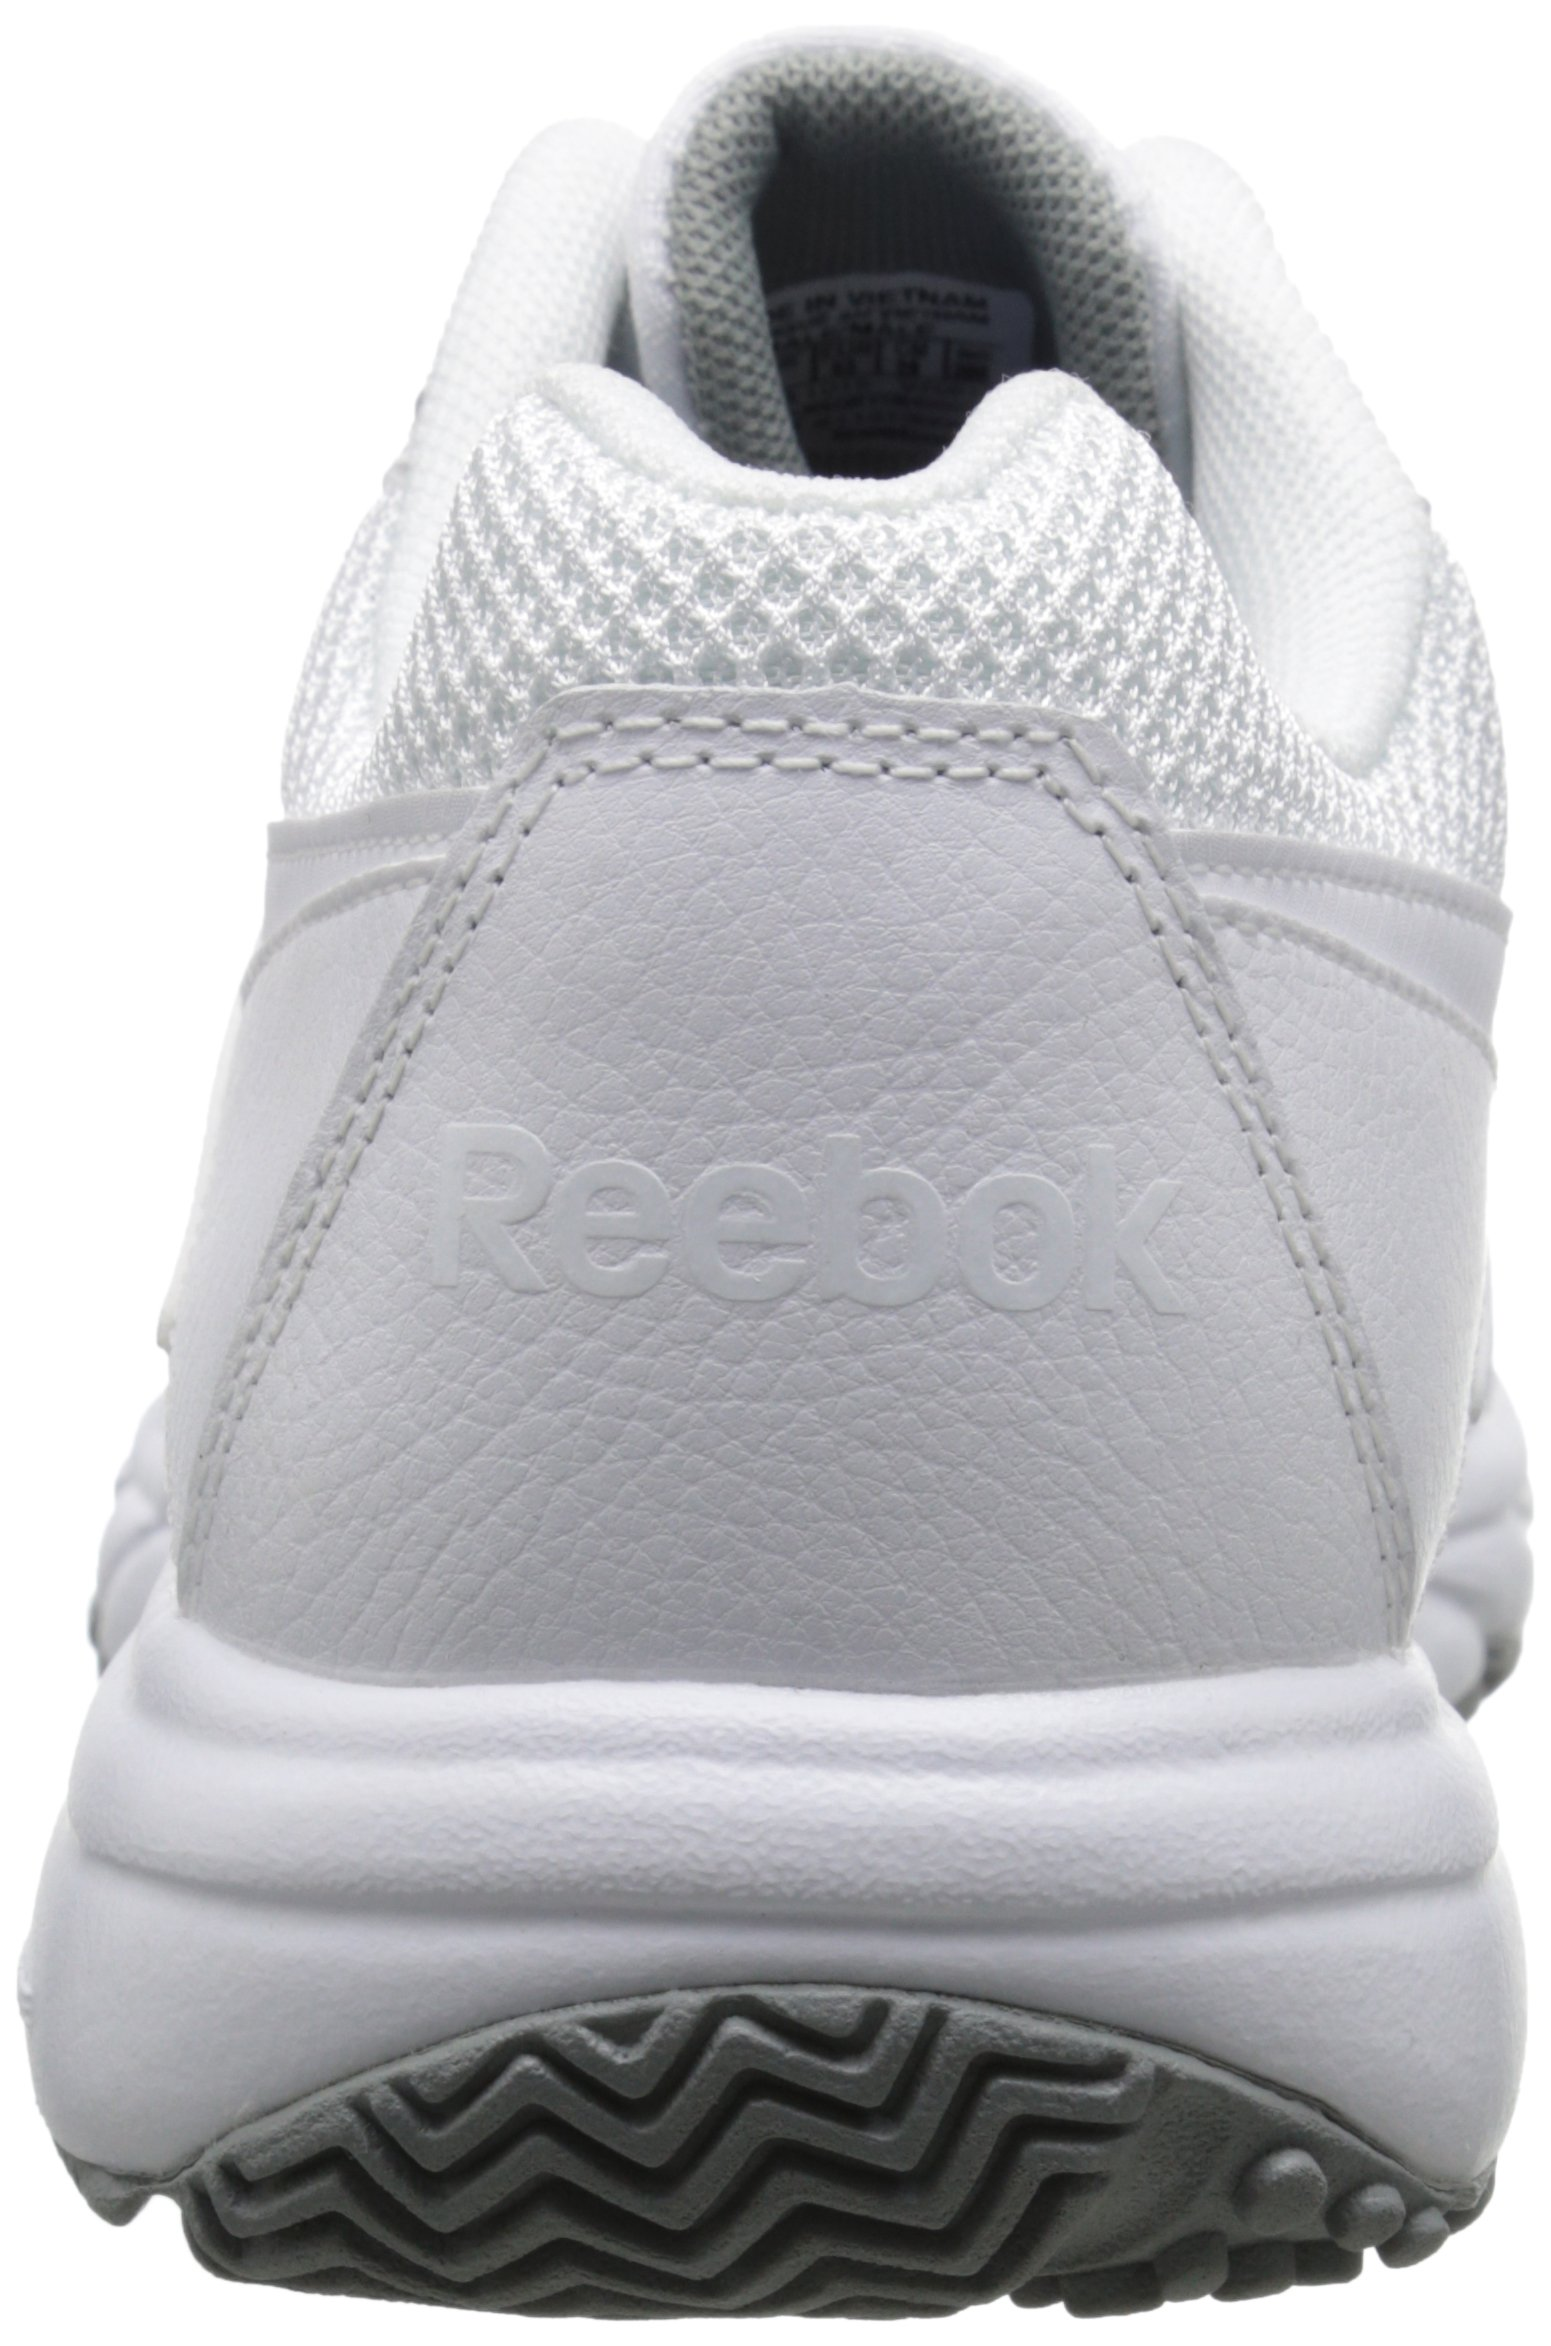 Reebok Men s Work N Cushion 2.0 Walking Shoe 4d156460b